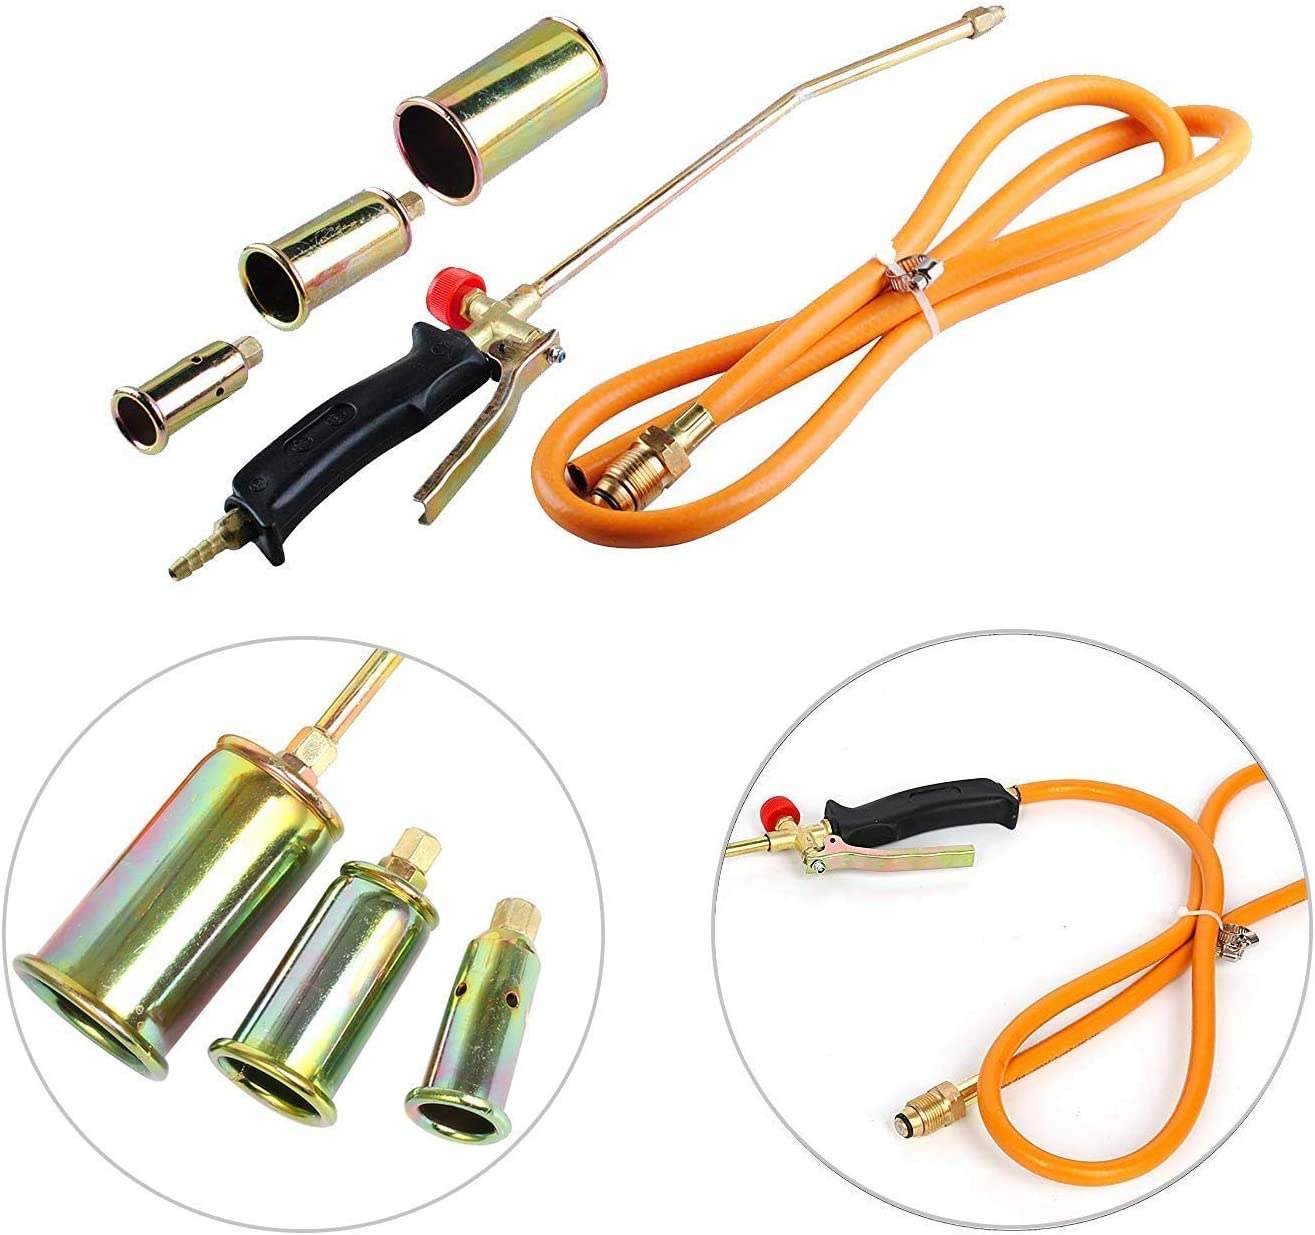 YaeTek Portable Propane Weed Torch Burner Fire Starter Ice Melter Melting with 3 Nozzles and Hose